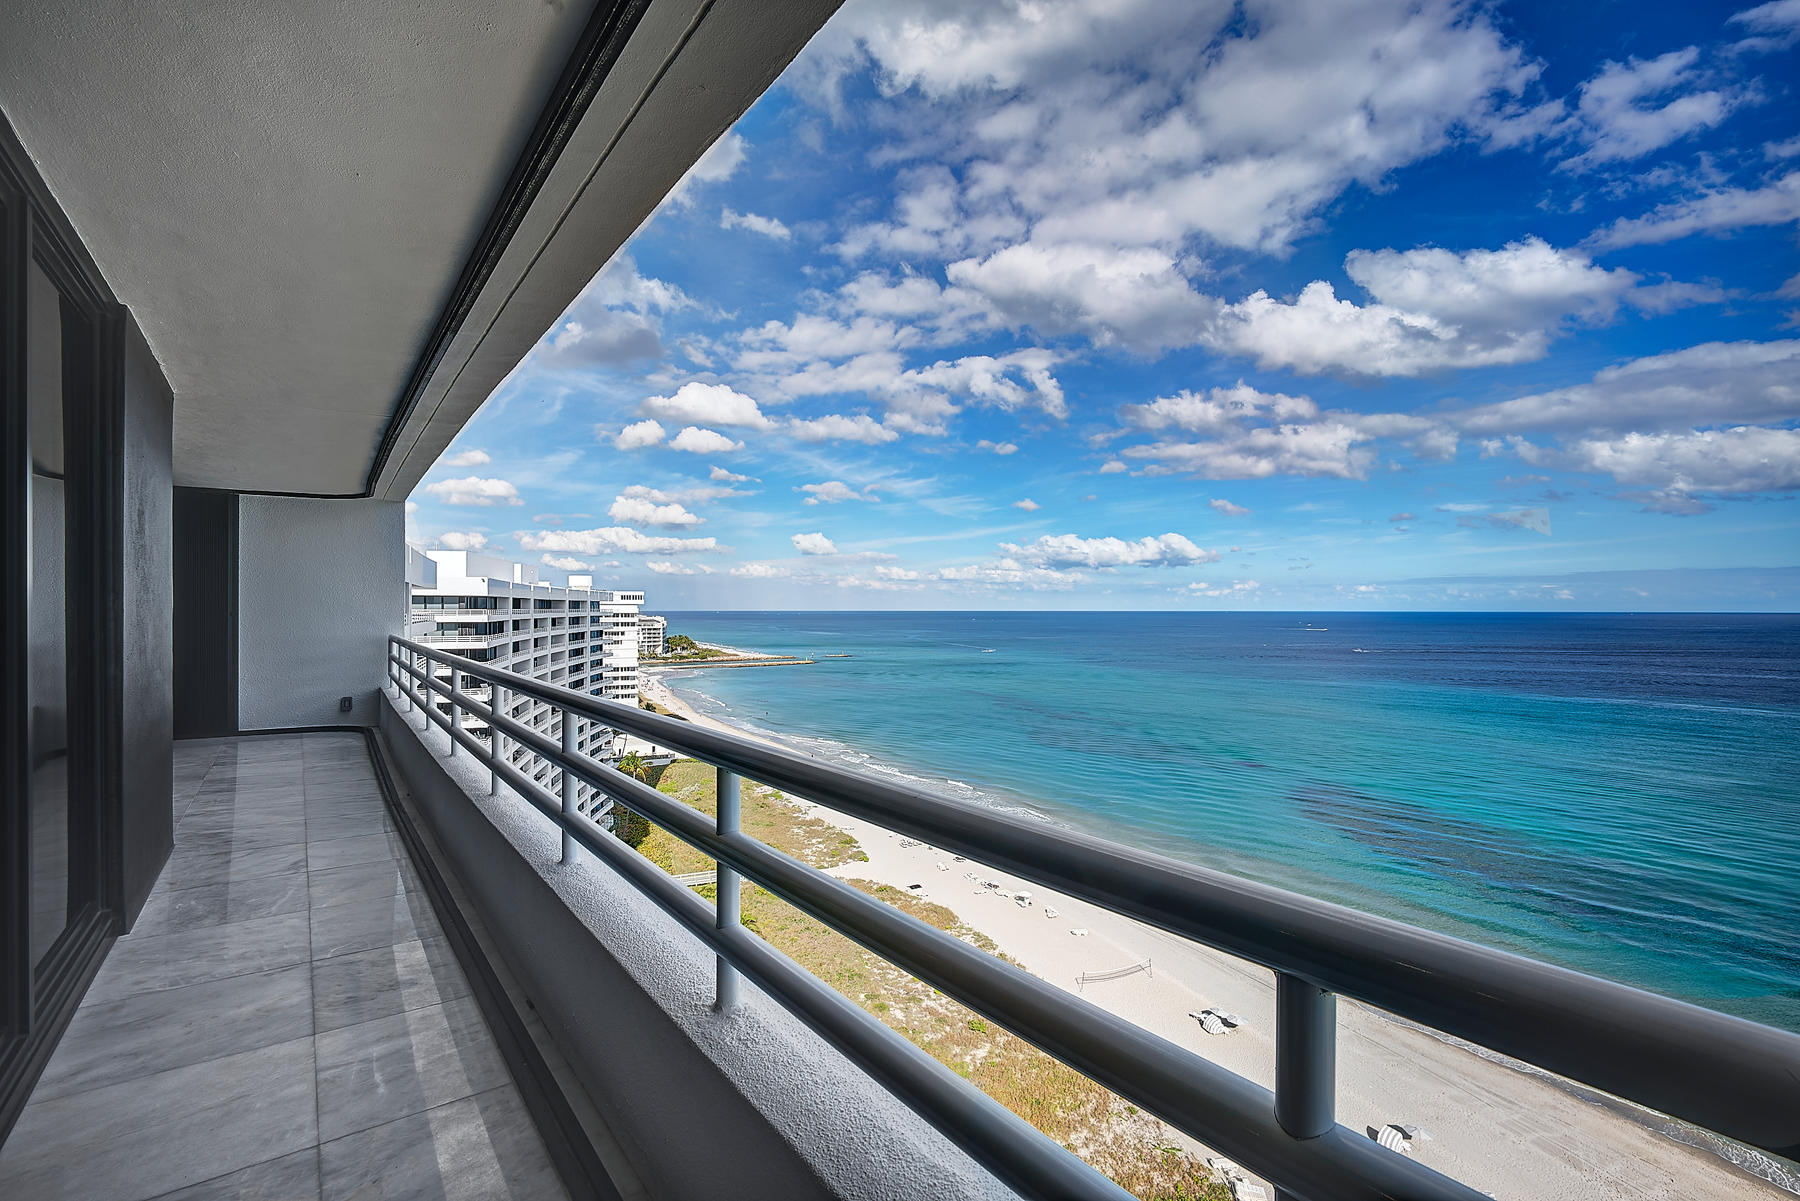 Welcome to an Ultra Modern Oceanfront Paradise! This rare (only available) professionally designed and fully renovated penthouse condominium provides magnificent direct oceanfront and City views. Expansive 9 foot ceilings with floor to ceiling windows/sliders providing unparalleled ocean and city vistas.All Miele German Appliances ThroughoutItalian Cabinets In Primary Kitchen, Caterer's Kitchen and Bathrooms24 X 24 Turkish Marble Floor Throughout Interior and Exterior BalconiesFull Gourmet Primary KitchenTwo (2) Separate PantriesCaterer's Kitchen with Miele appliances plus Designated StorageLaundry Room with Miele W/D and expansive storageLISTING INC. AIR-CONDITIONED PRIVATE DESIGNER BEACH CABANA:Beach Kitchen with Sink, Cooktop and Refrigerator/FreezerEuropean W/